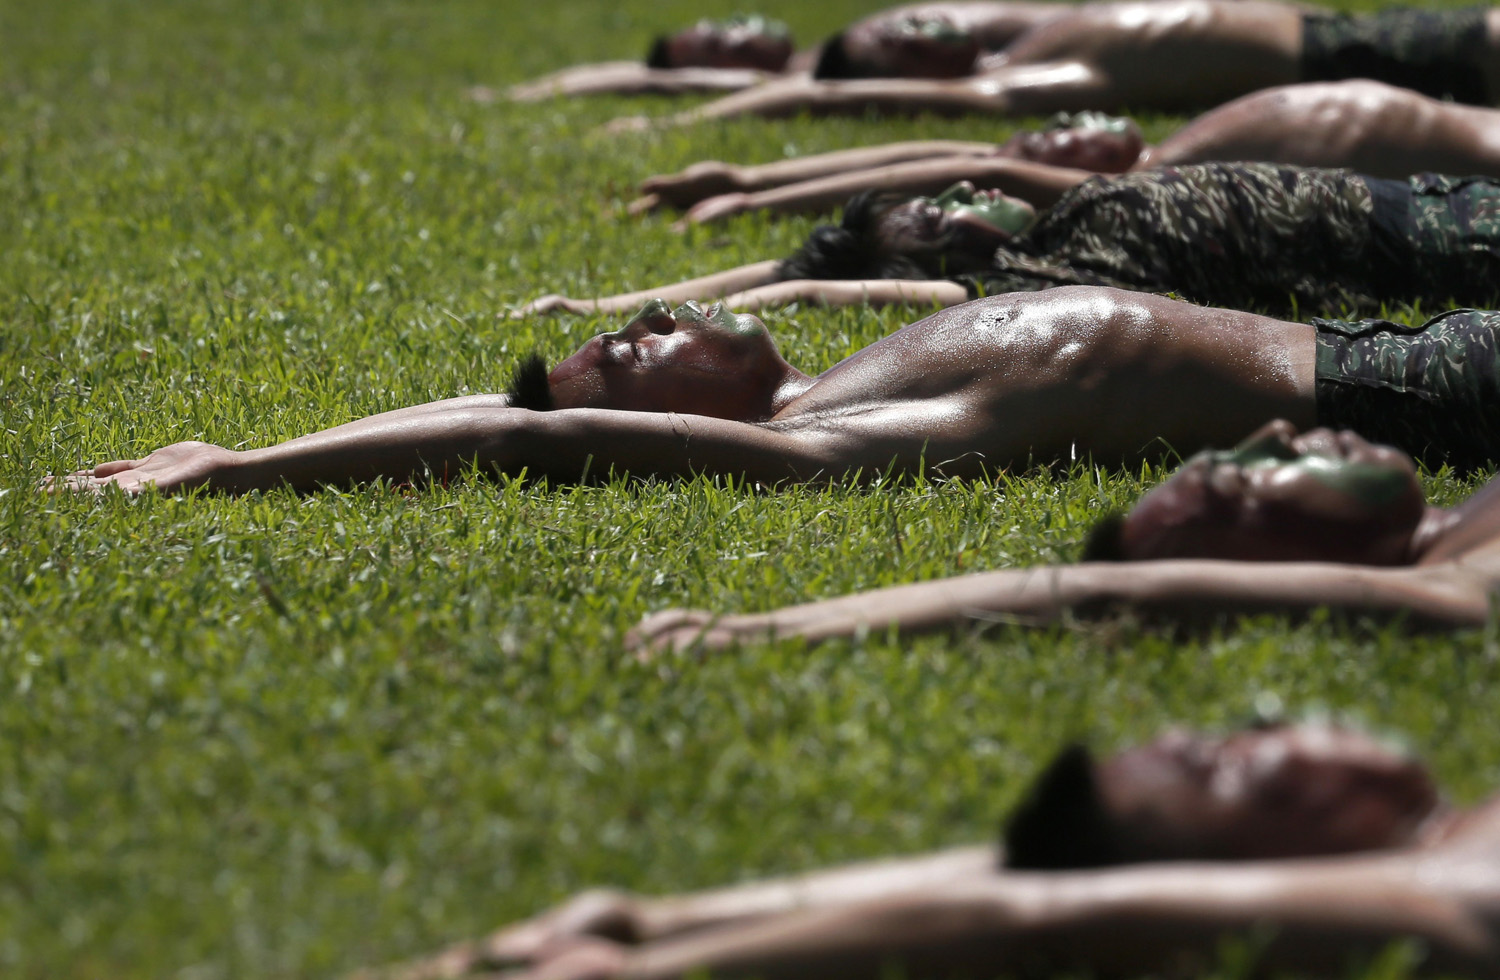 Taiwan Marine Corps  Frog Men  display stretching routines during a tour at the naval base in Zuoying, southern Taiwan on July 21, 2014.